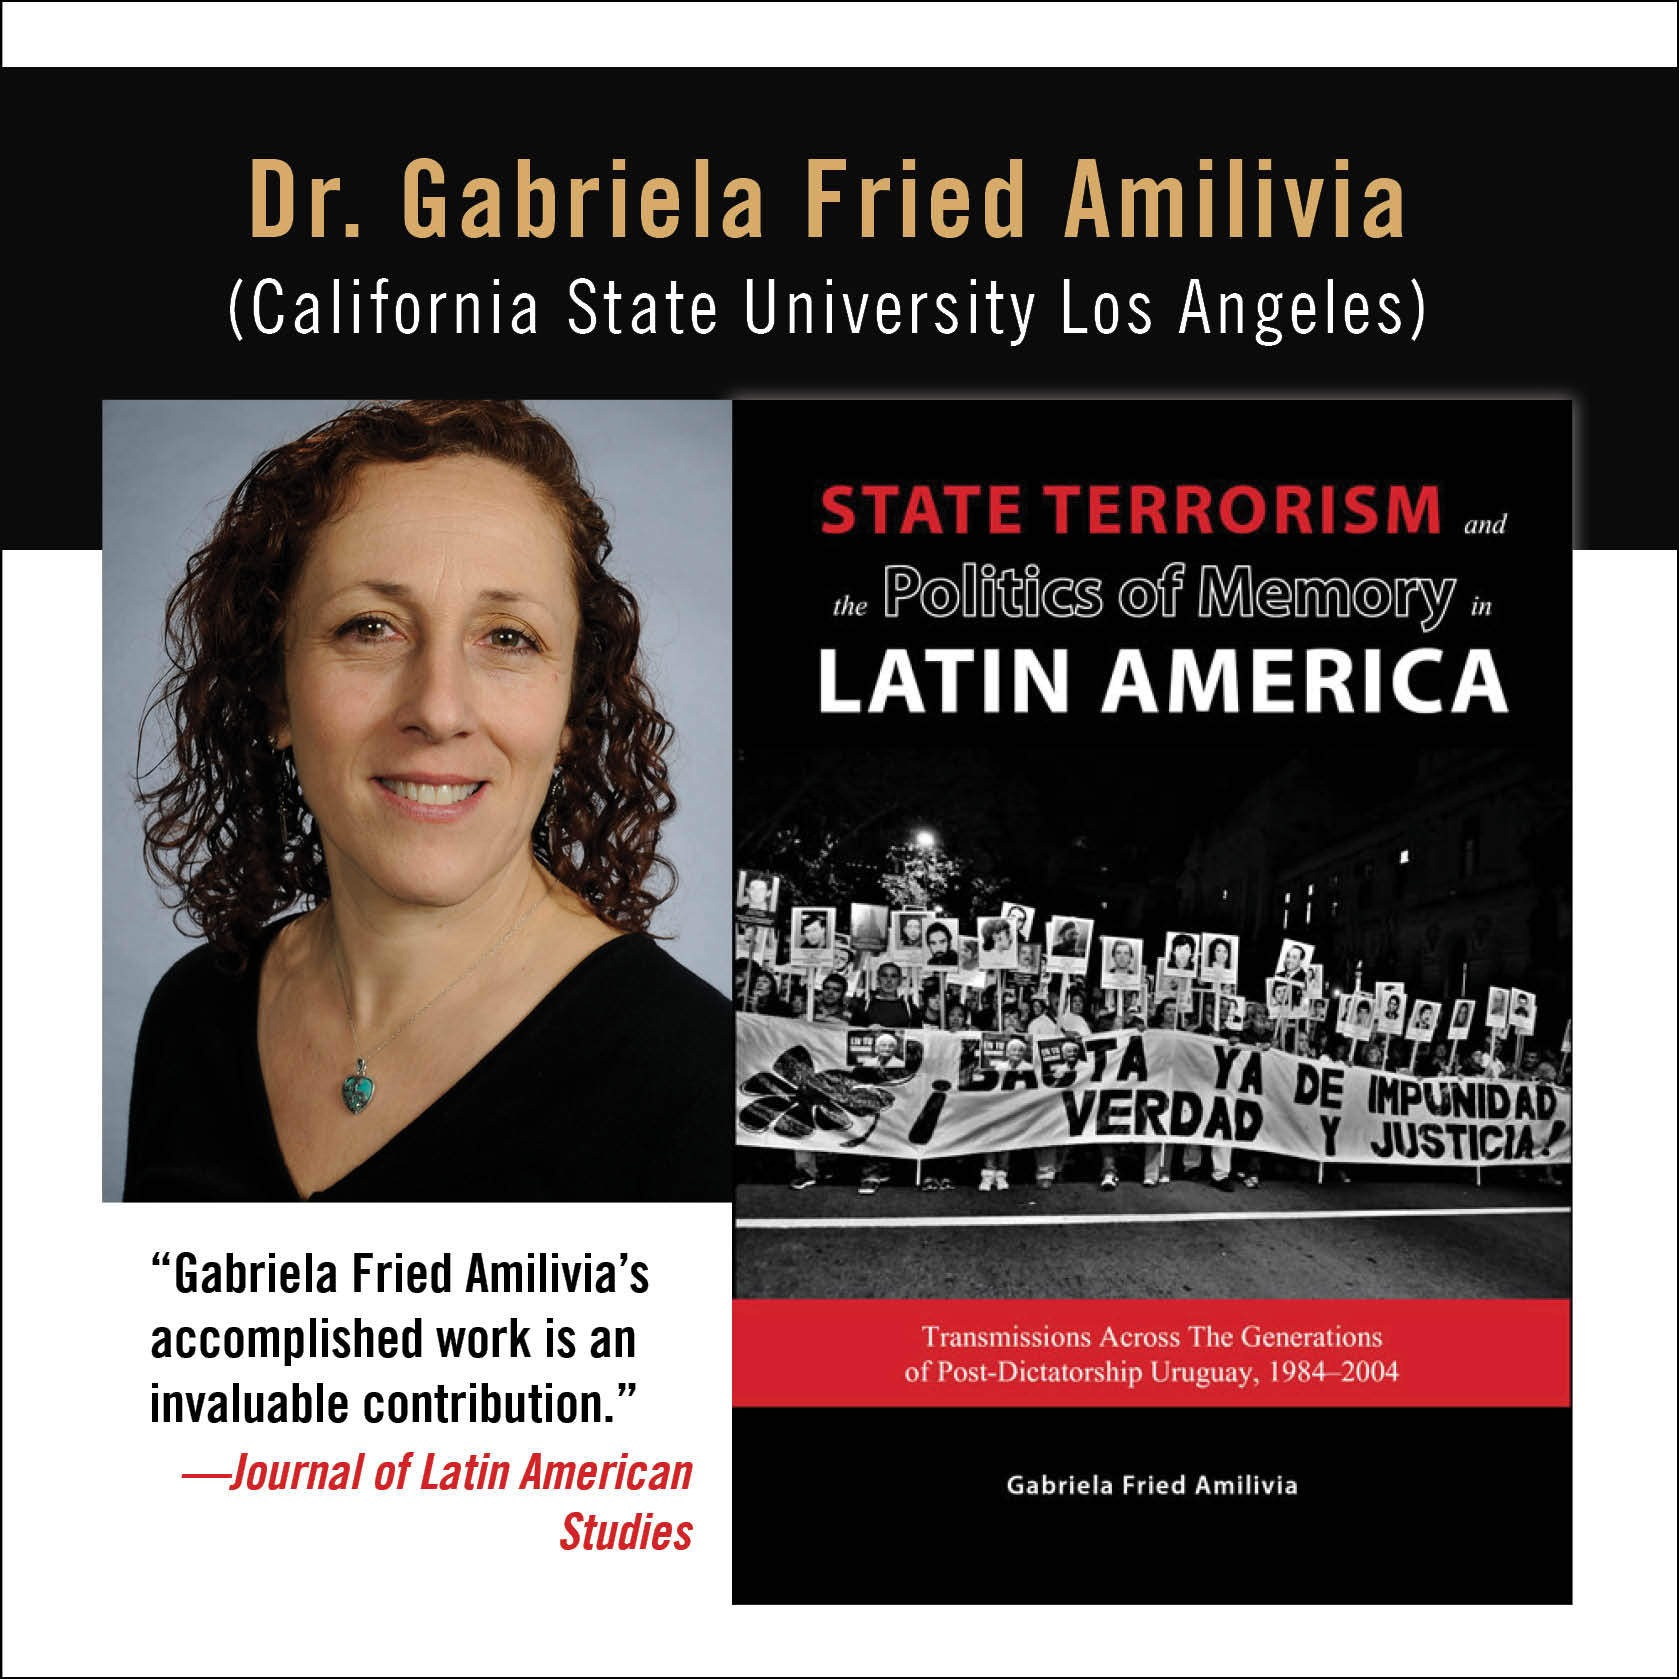 Gabriela Fried Amilivia